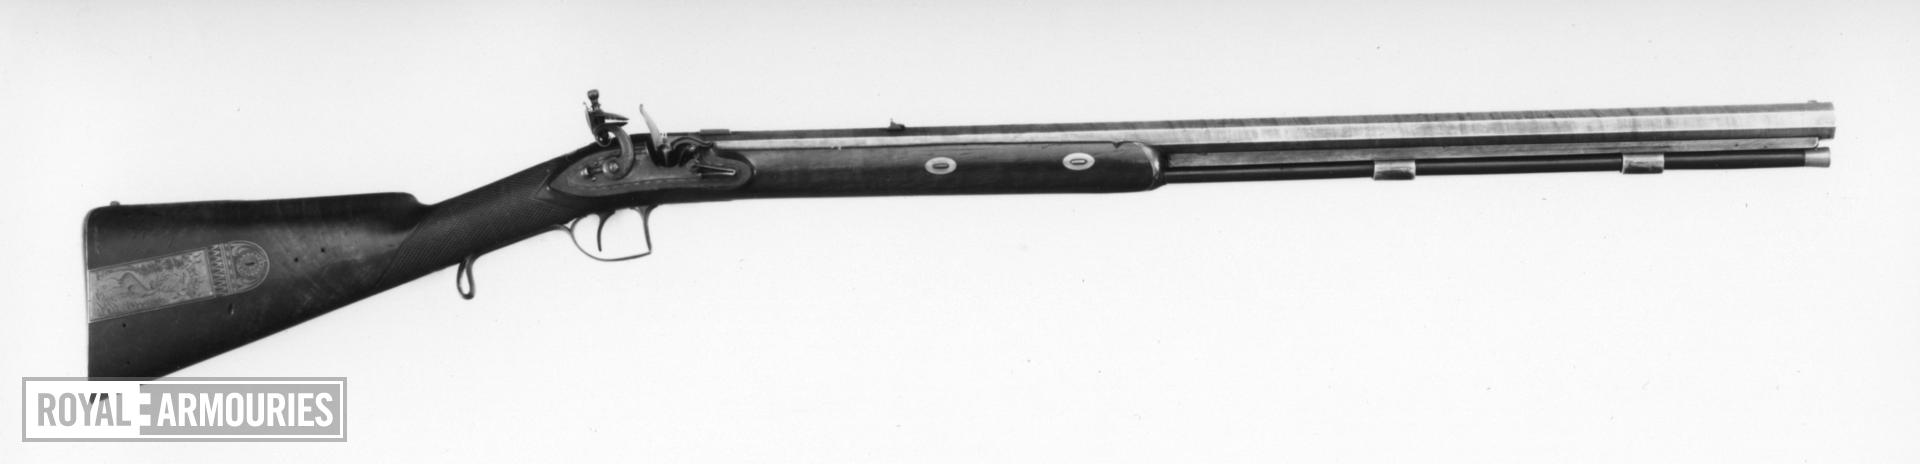 Flintlock muzzle-loading presentation rifle - By Tatham Made as official government gifts.